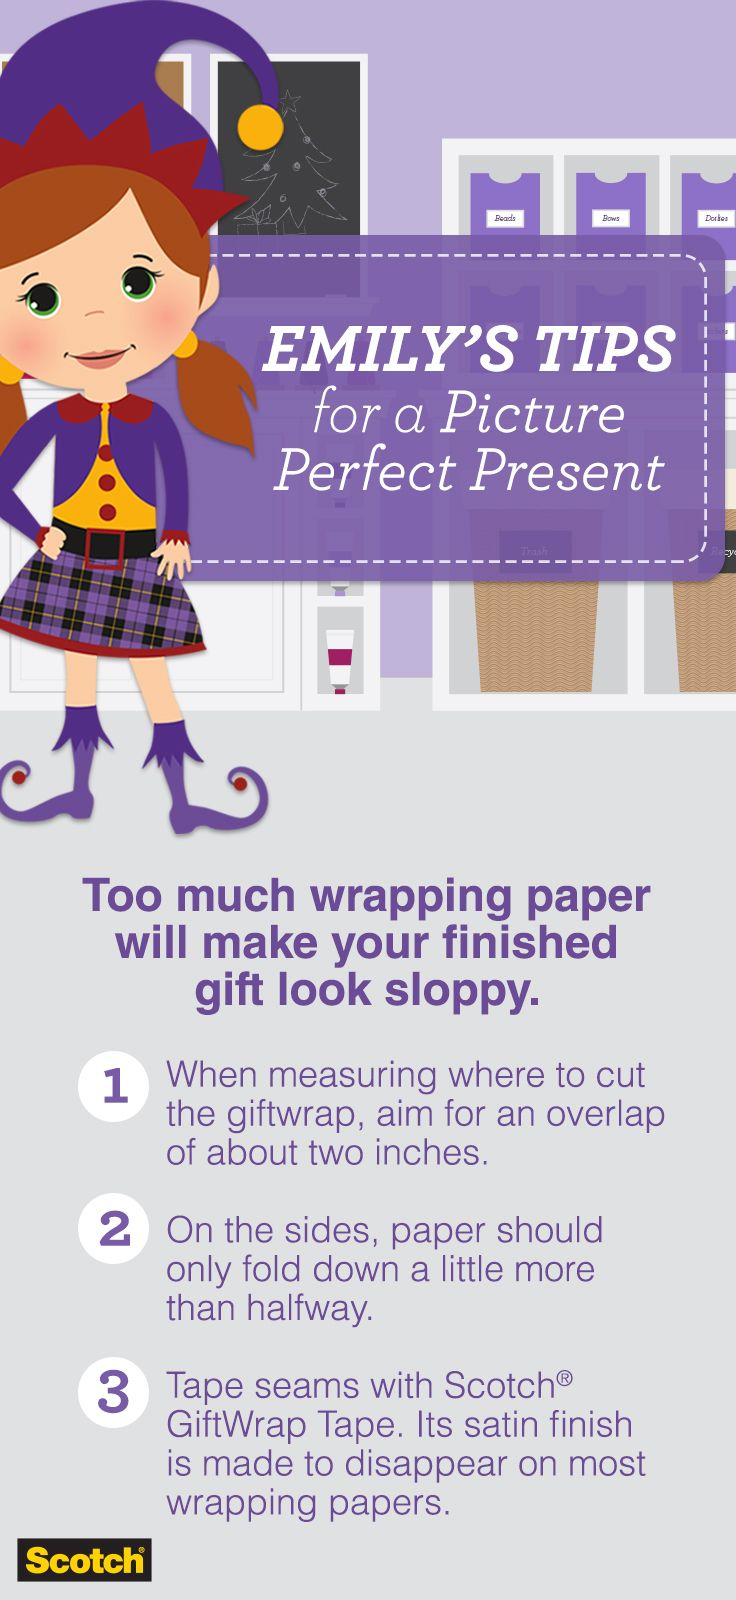 Wrapping tips for gorgeous gifts every time brit co - Wrapping A Perfect Present Means Being Resourceful With Wrapping Paper And Keeping The Seams On Your